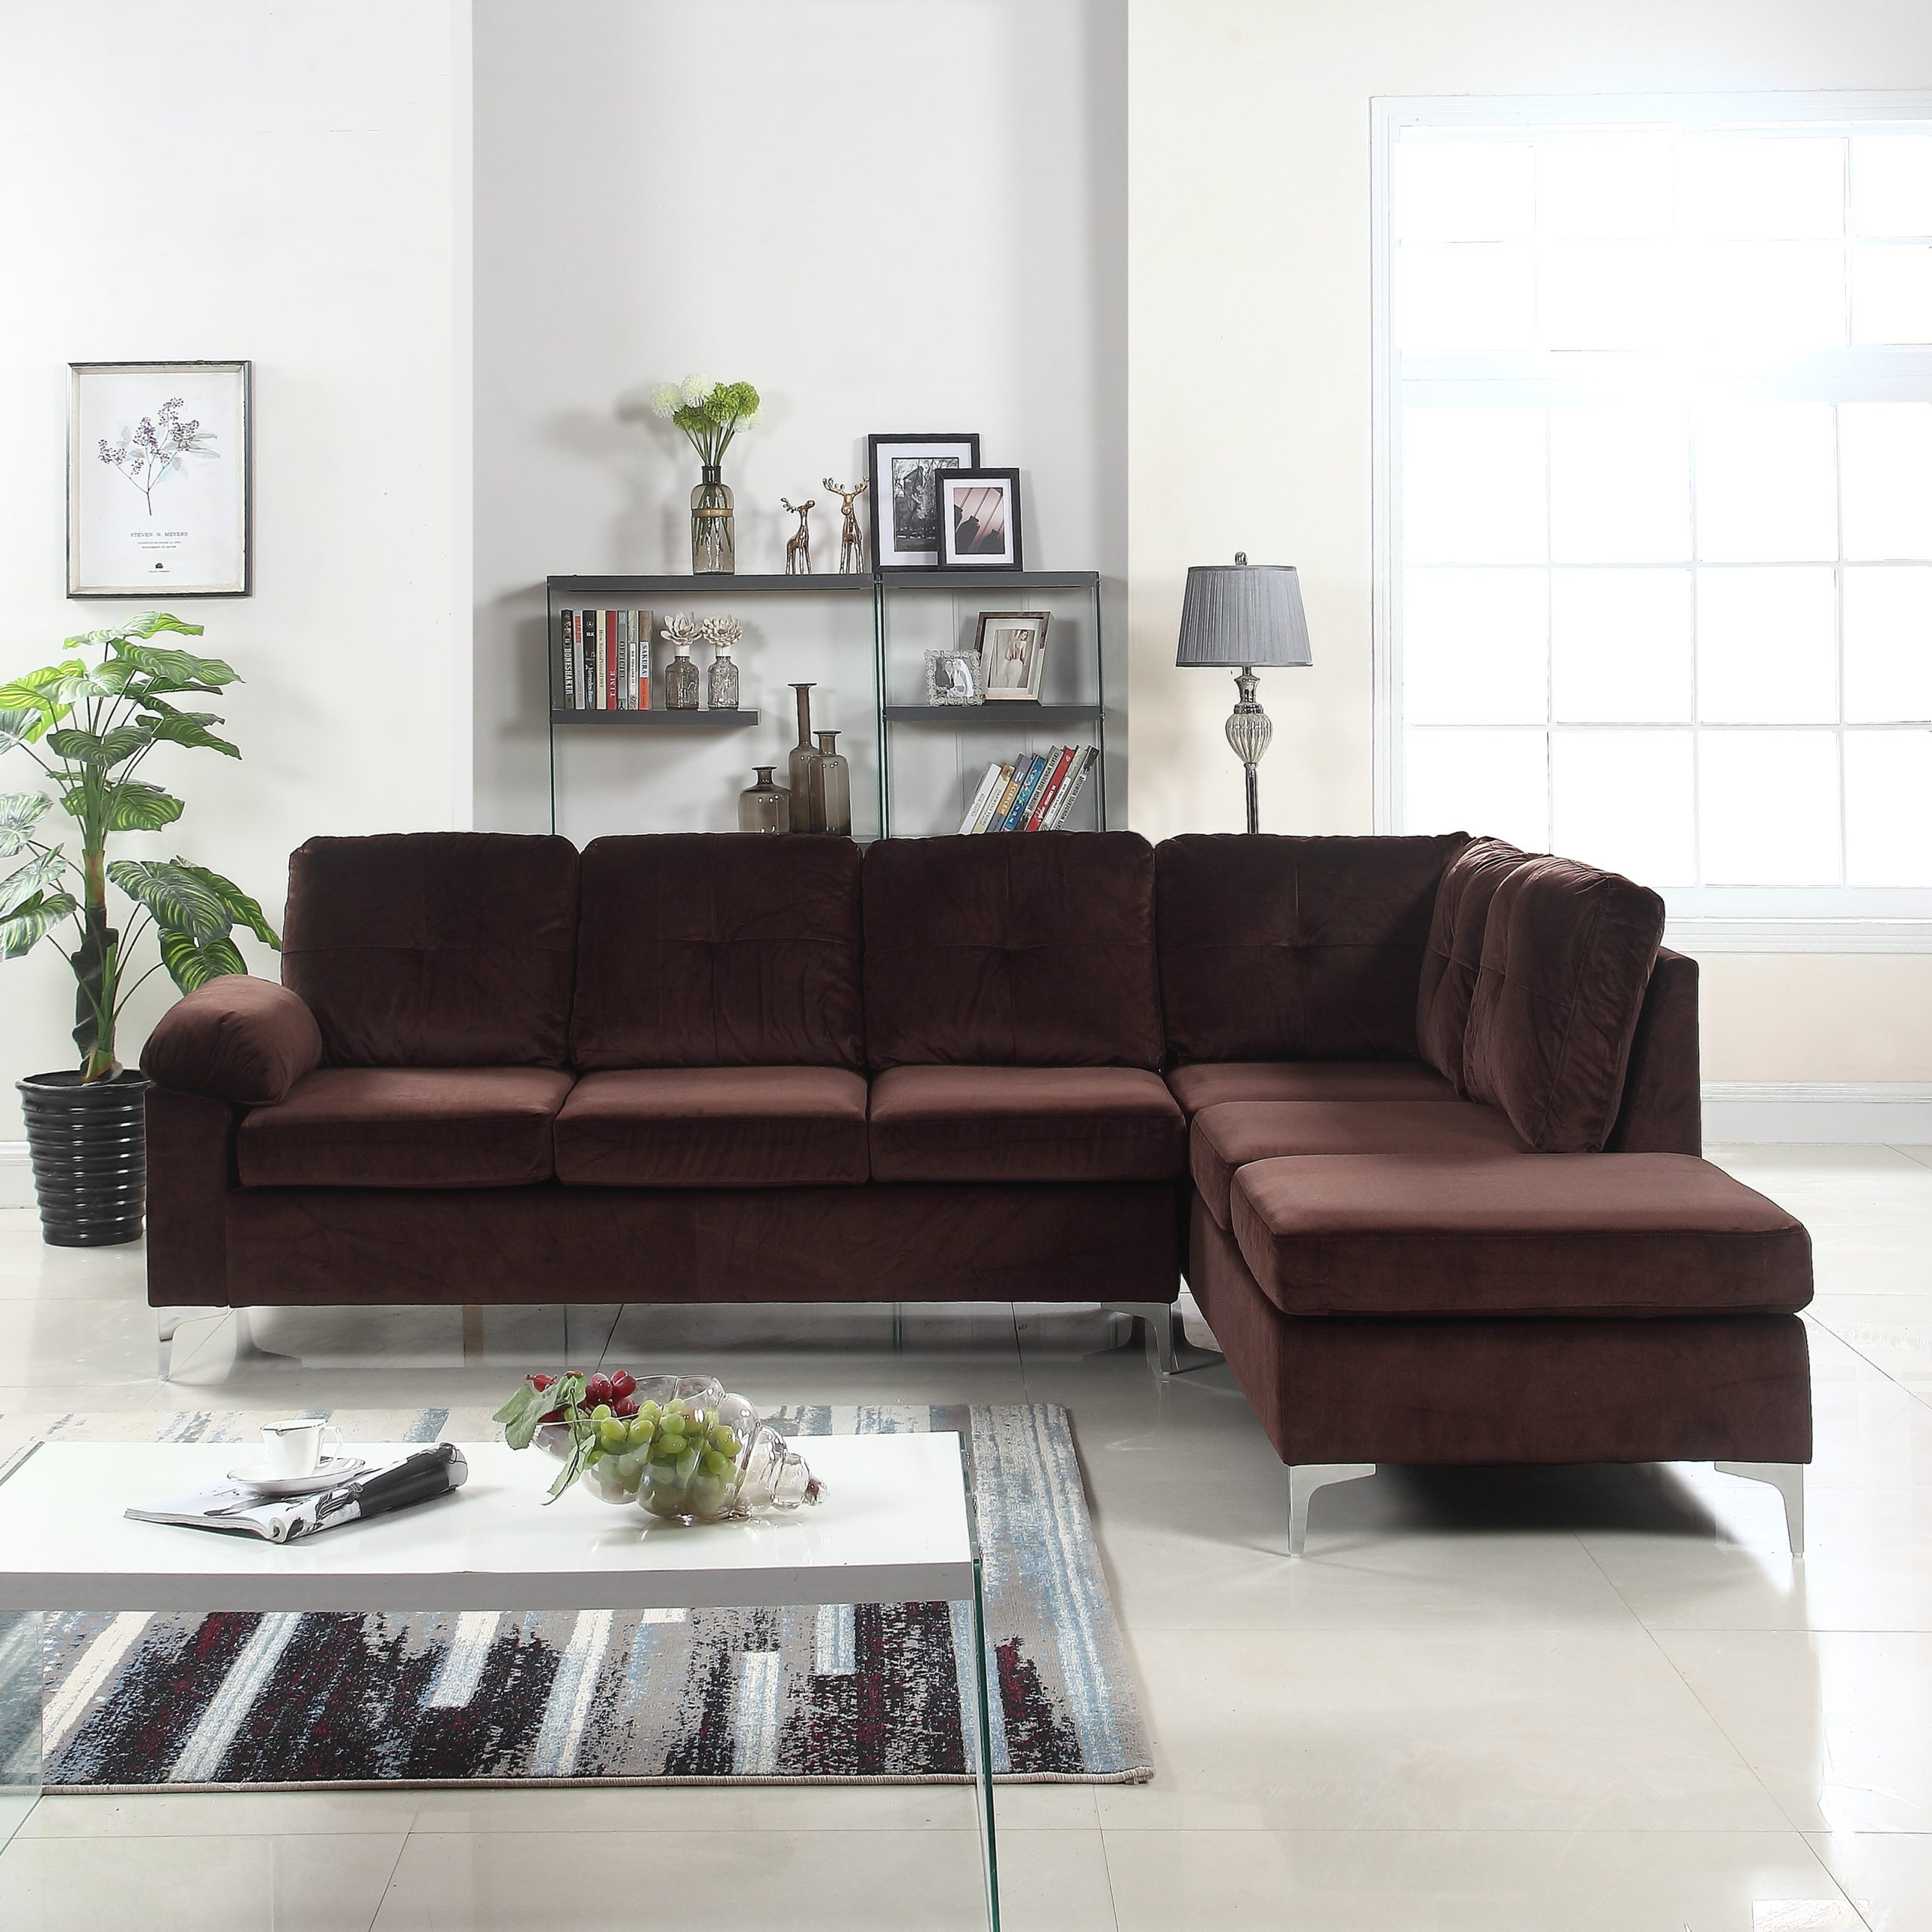 Tufted Brush Microfiber Sectional Sofa, Large L Shape Throughout Sectional Sofas With Oversized Ottoman (View 6 of 15)